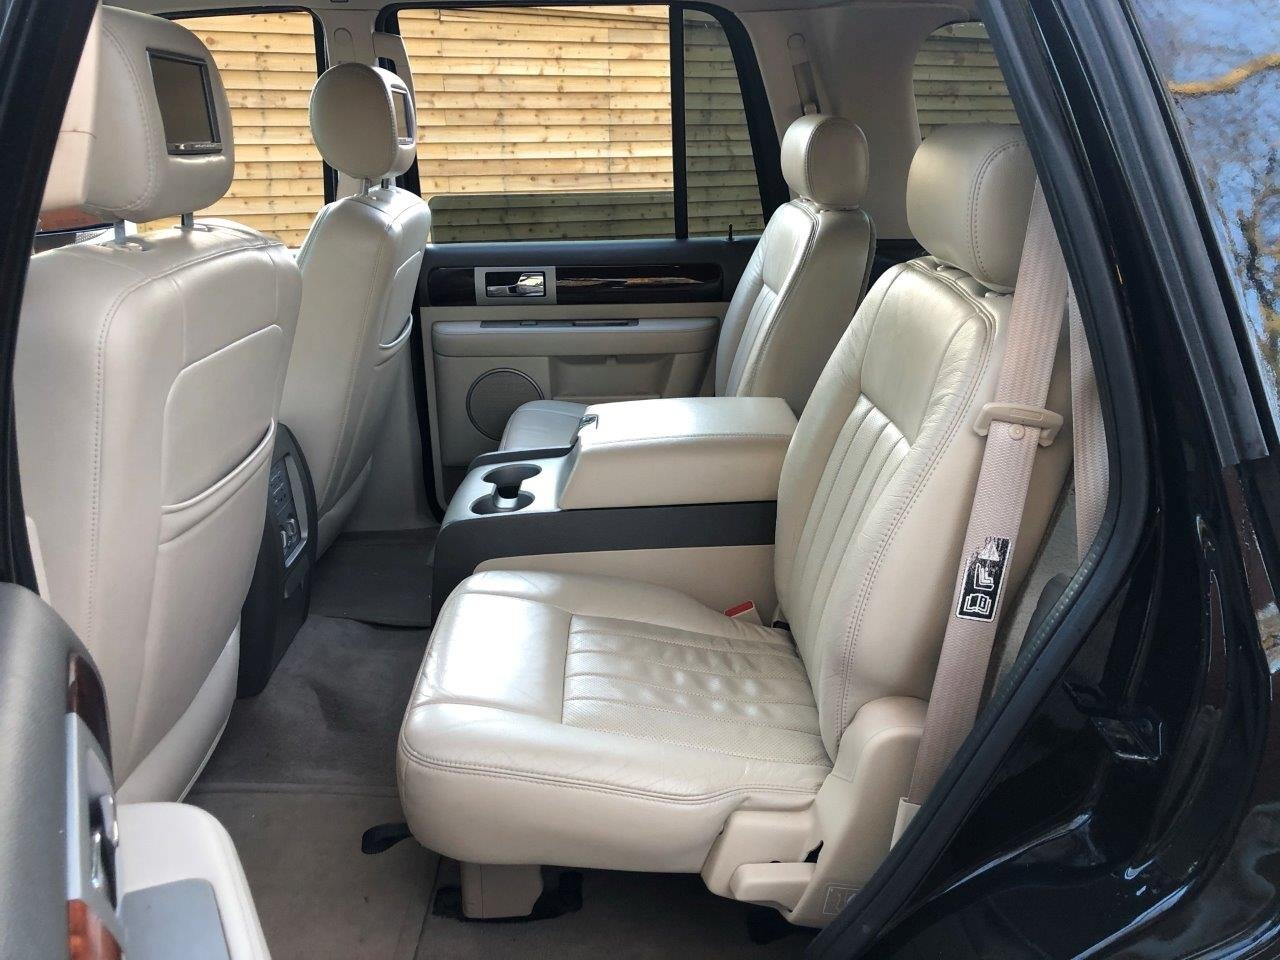 2004 Lincoln Navigator 4x4 SUV 7-Seater 5.4i V8 +LPG Conversion For Sale (picture 8 of 12)